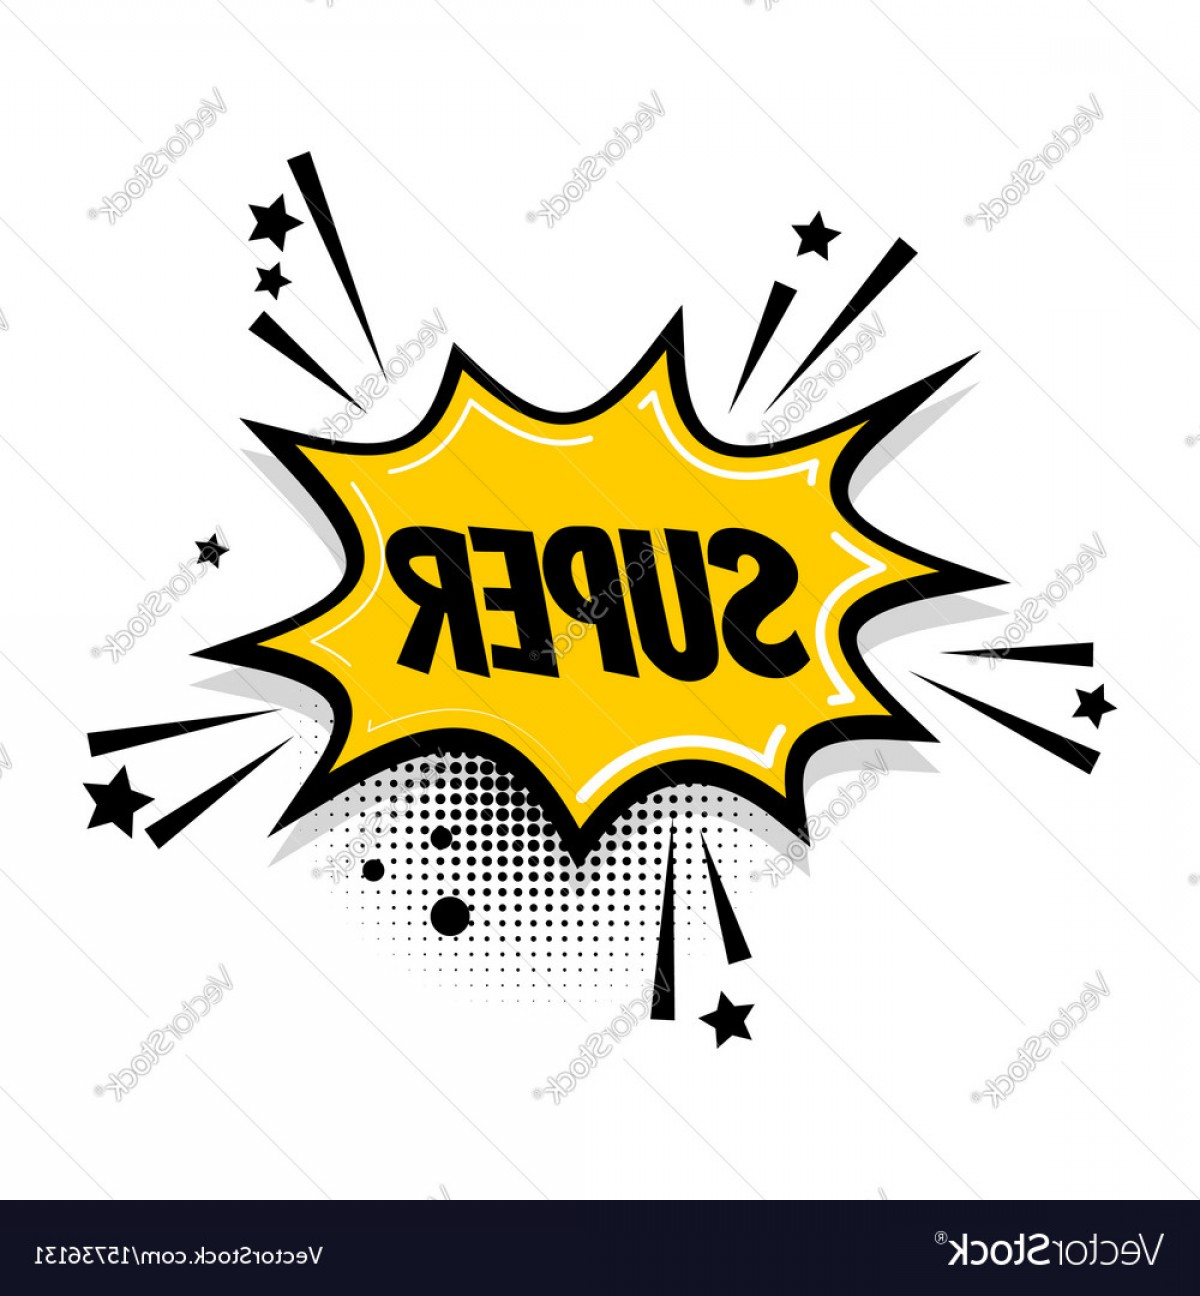 Text Illustrator Vector: Comic Text Speech Bubble Pop Art Super Vector